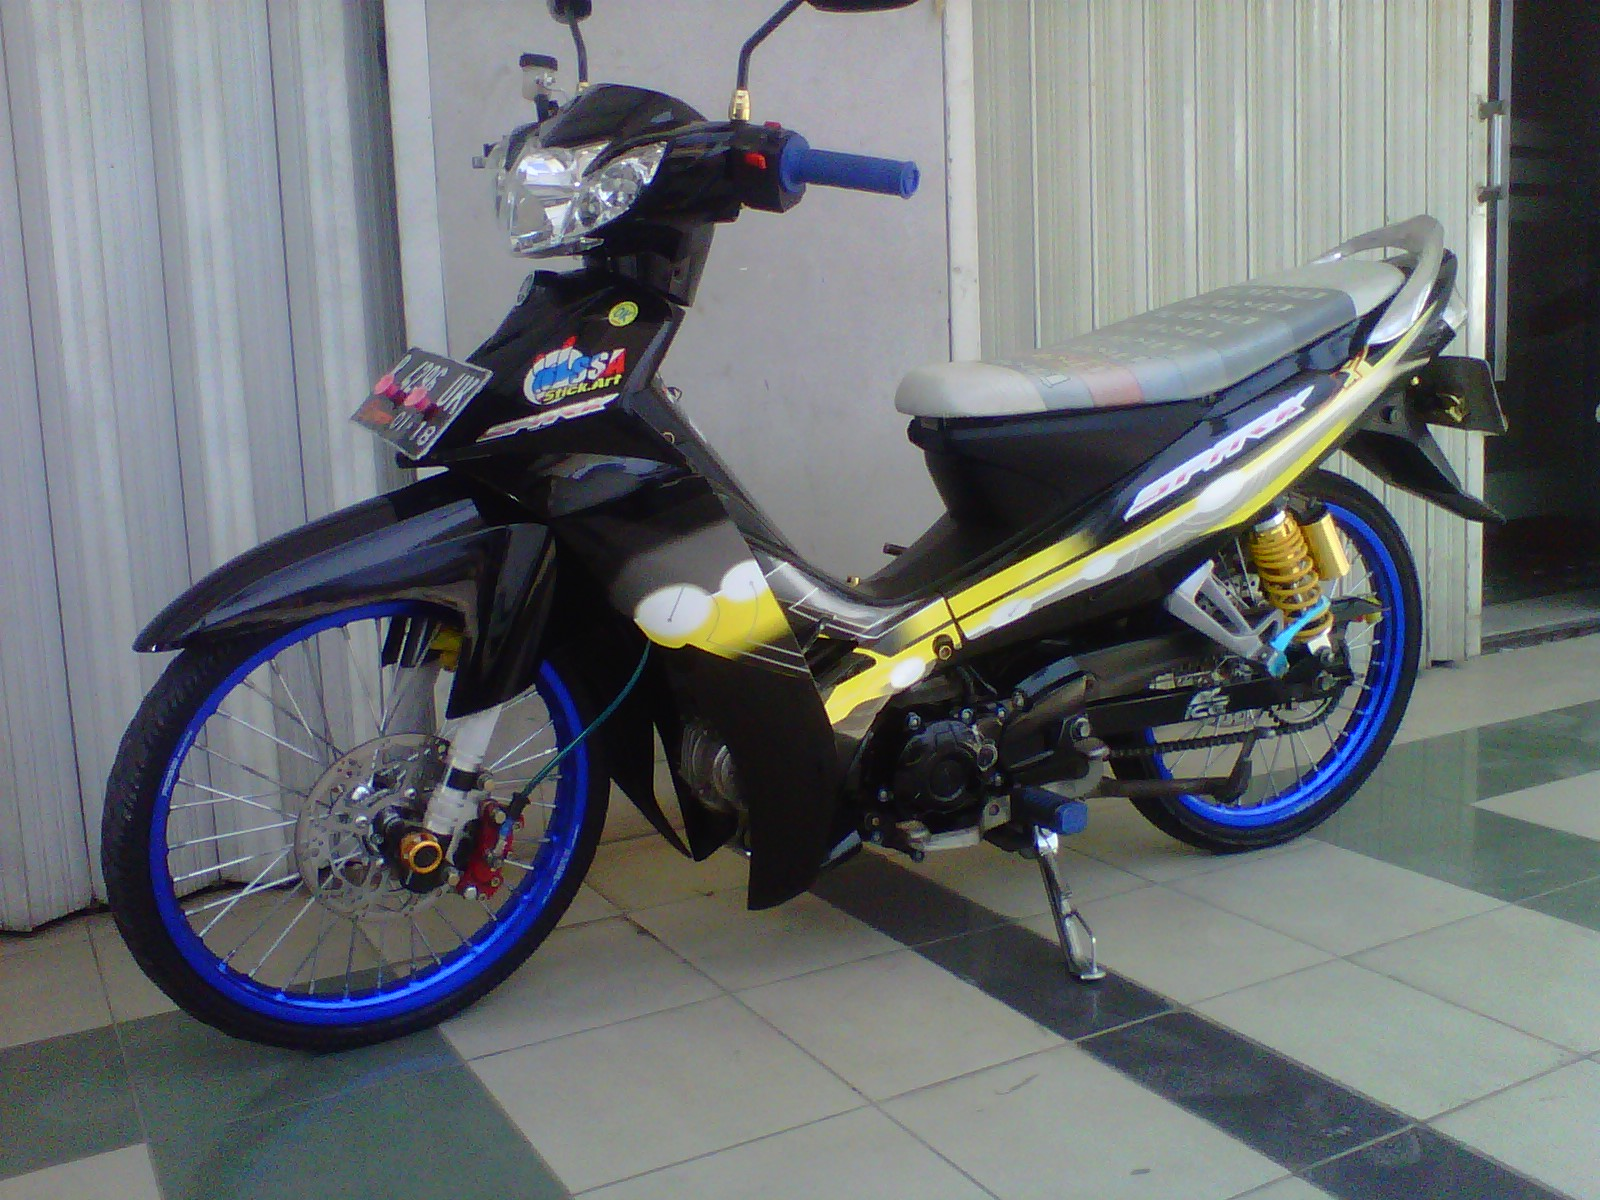 Download 46 Modifikasi Motor Vega R New 2007 Terlengkap Motor Cross